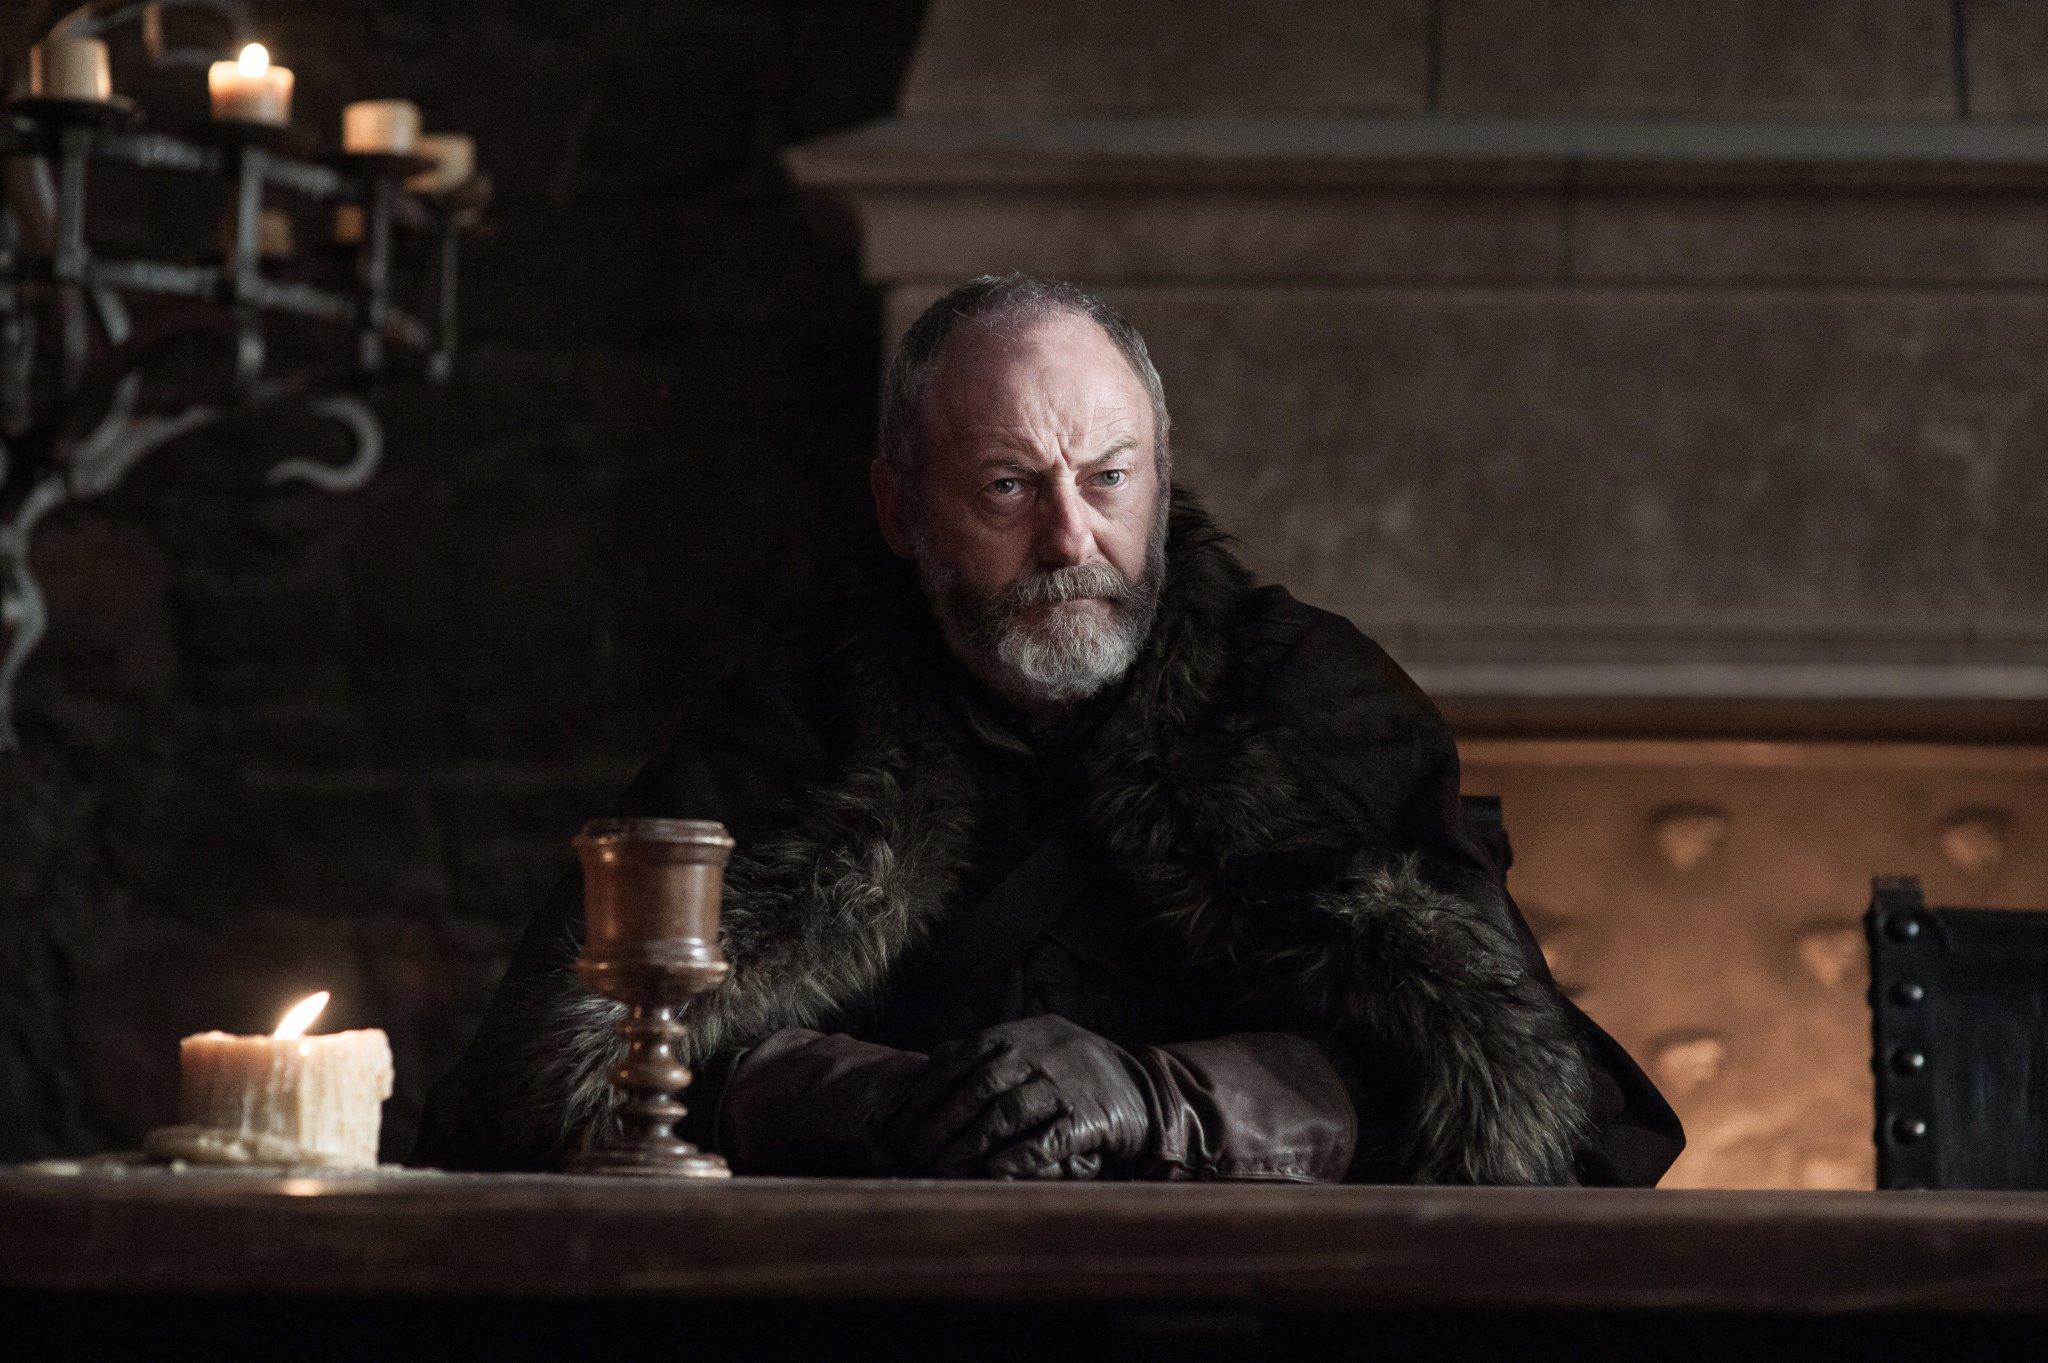 .@Liamcunningham1 as Davos Seaworth. #GoTS7 #GameofThrones (Photo Helen: Sloan/HBO) https://t.co/ZOYZ7IFd8e